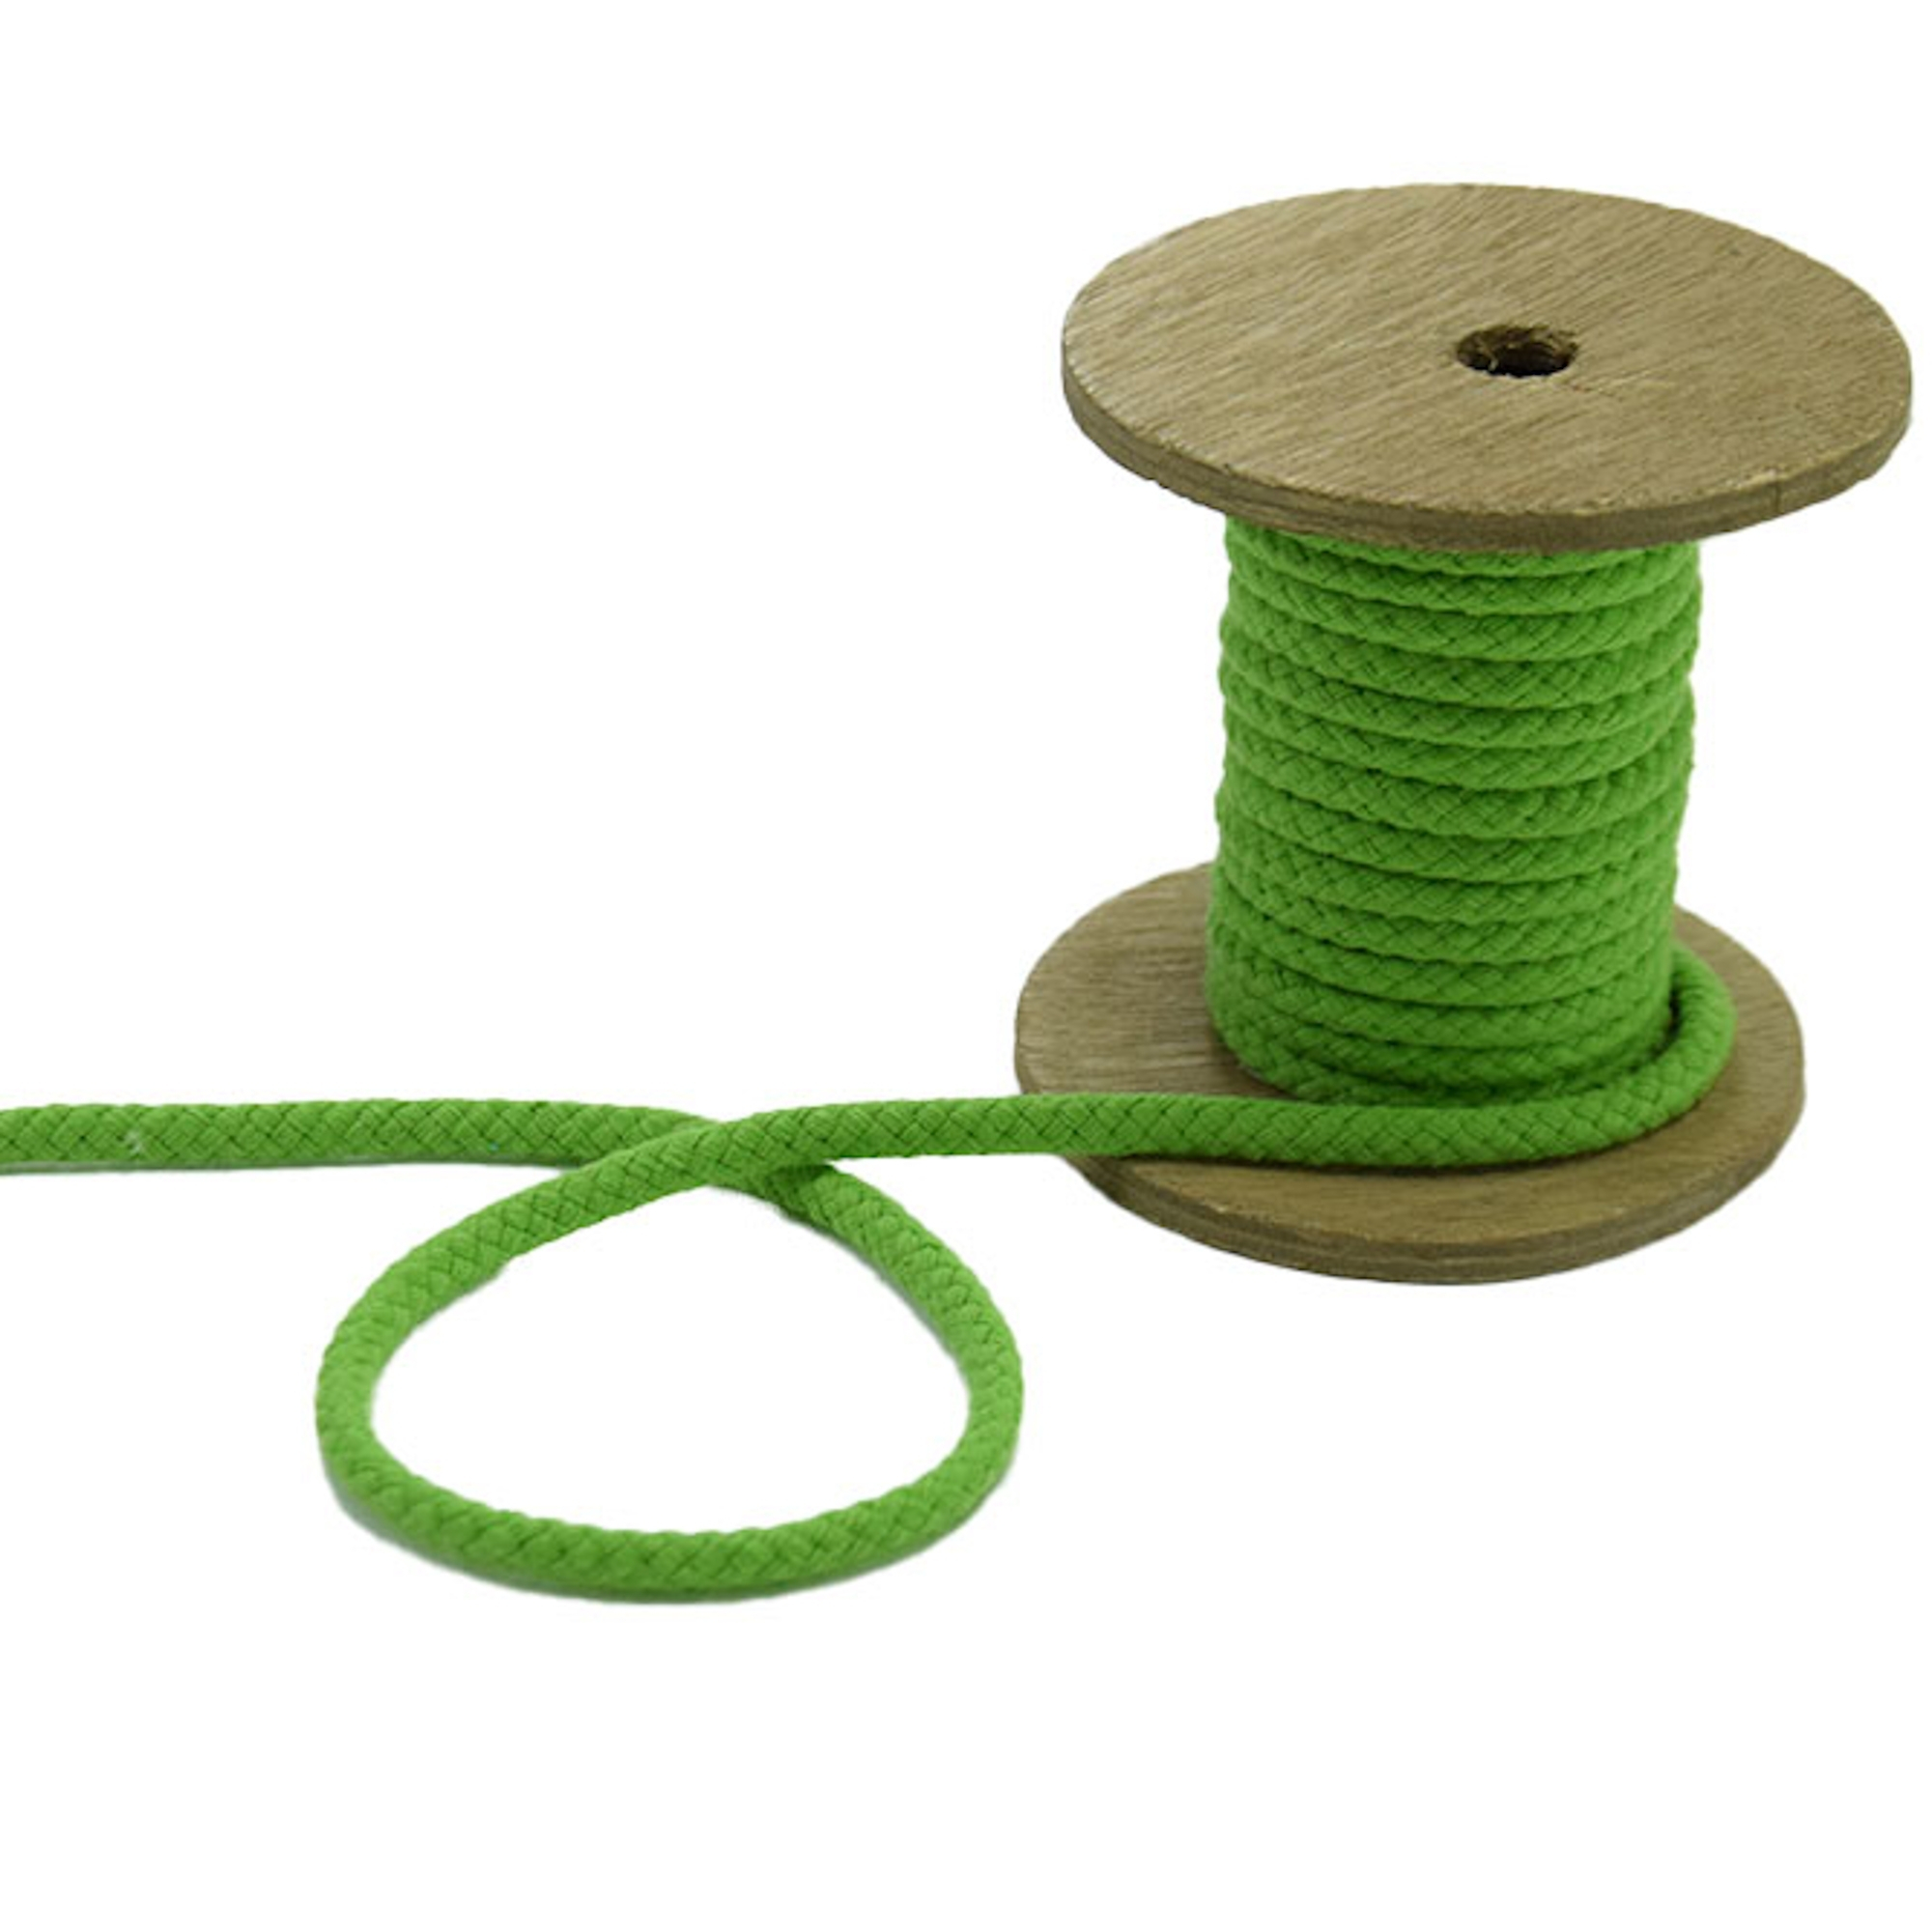 Sznurek do kurtki 5 mm, medium green | 42274 | grün